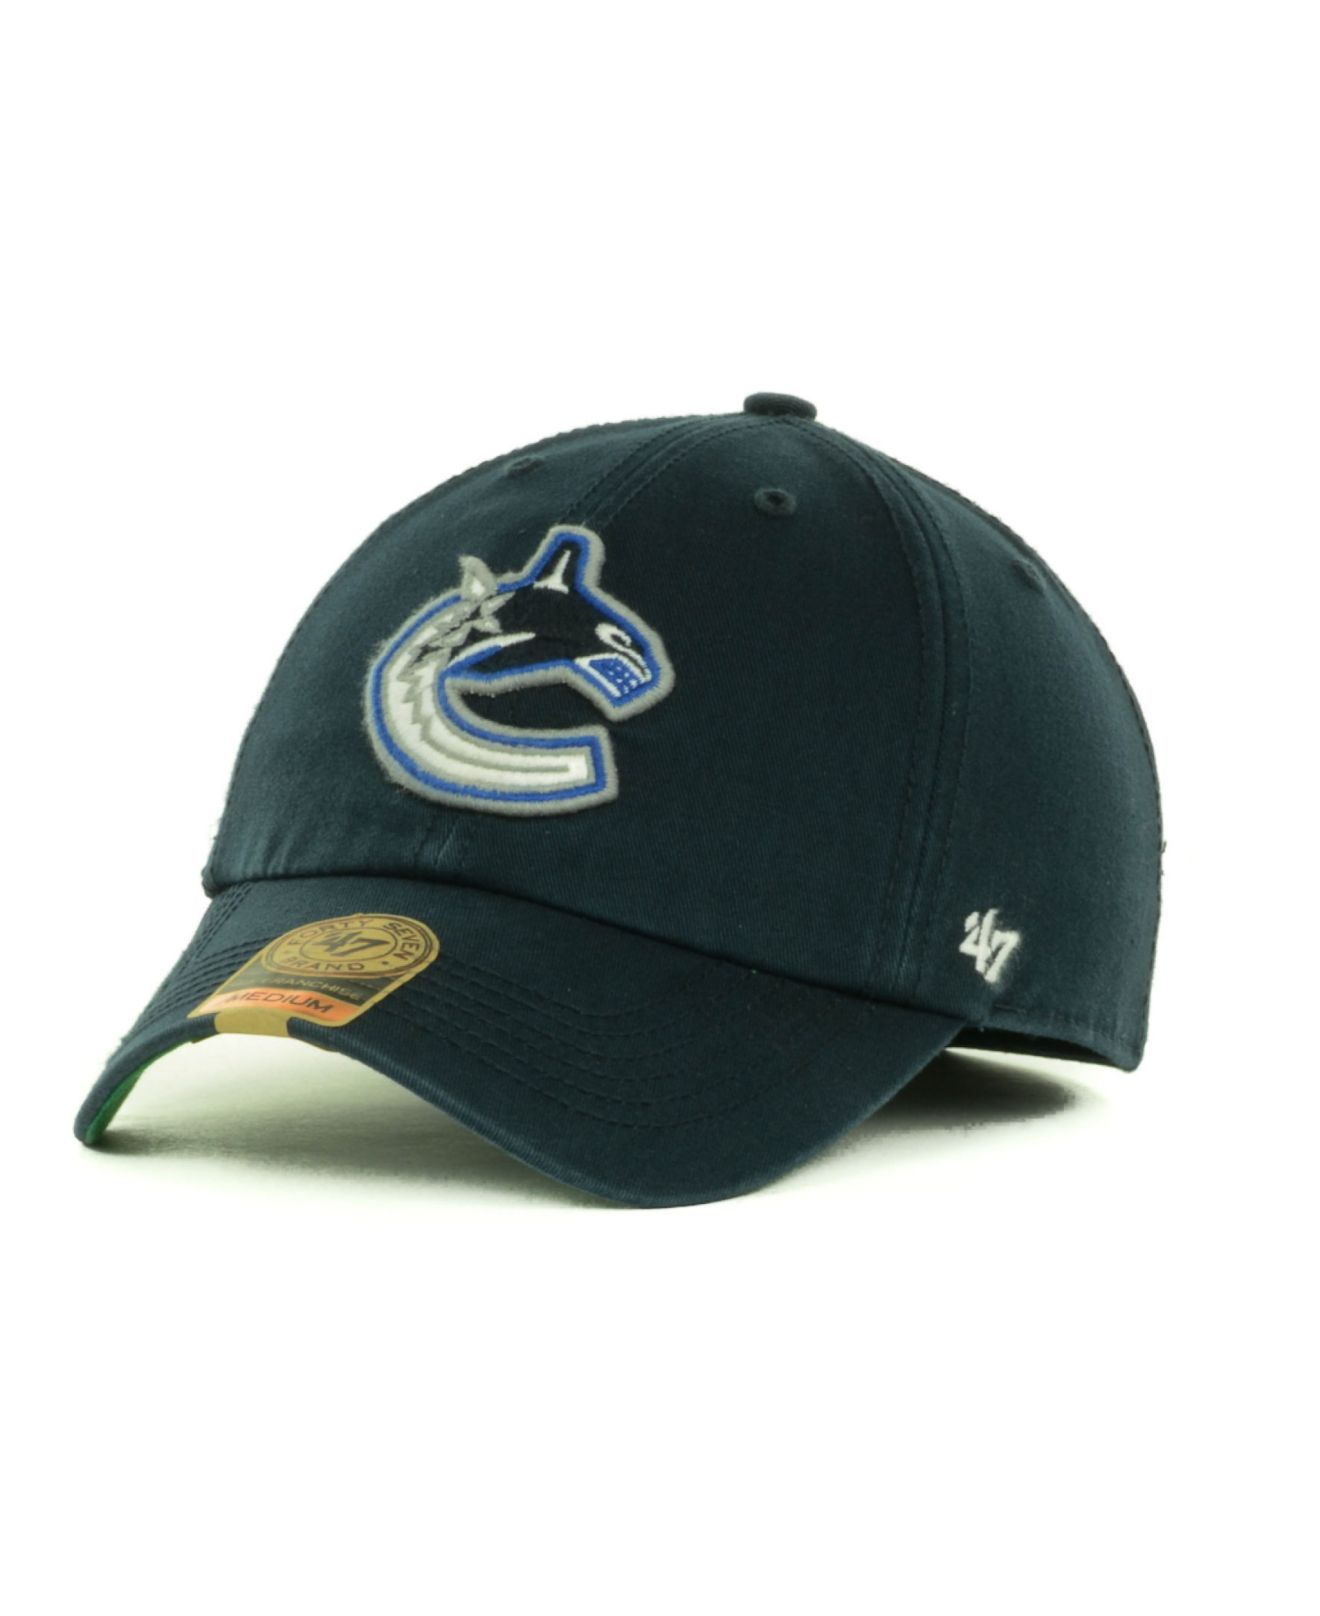 9bc68c04d99 ... best price lyst 47 brand vancouver canucks franchise cap in blue for men  33583 f7e6f